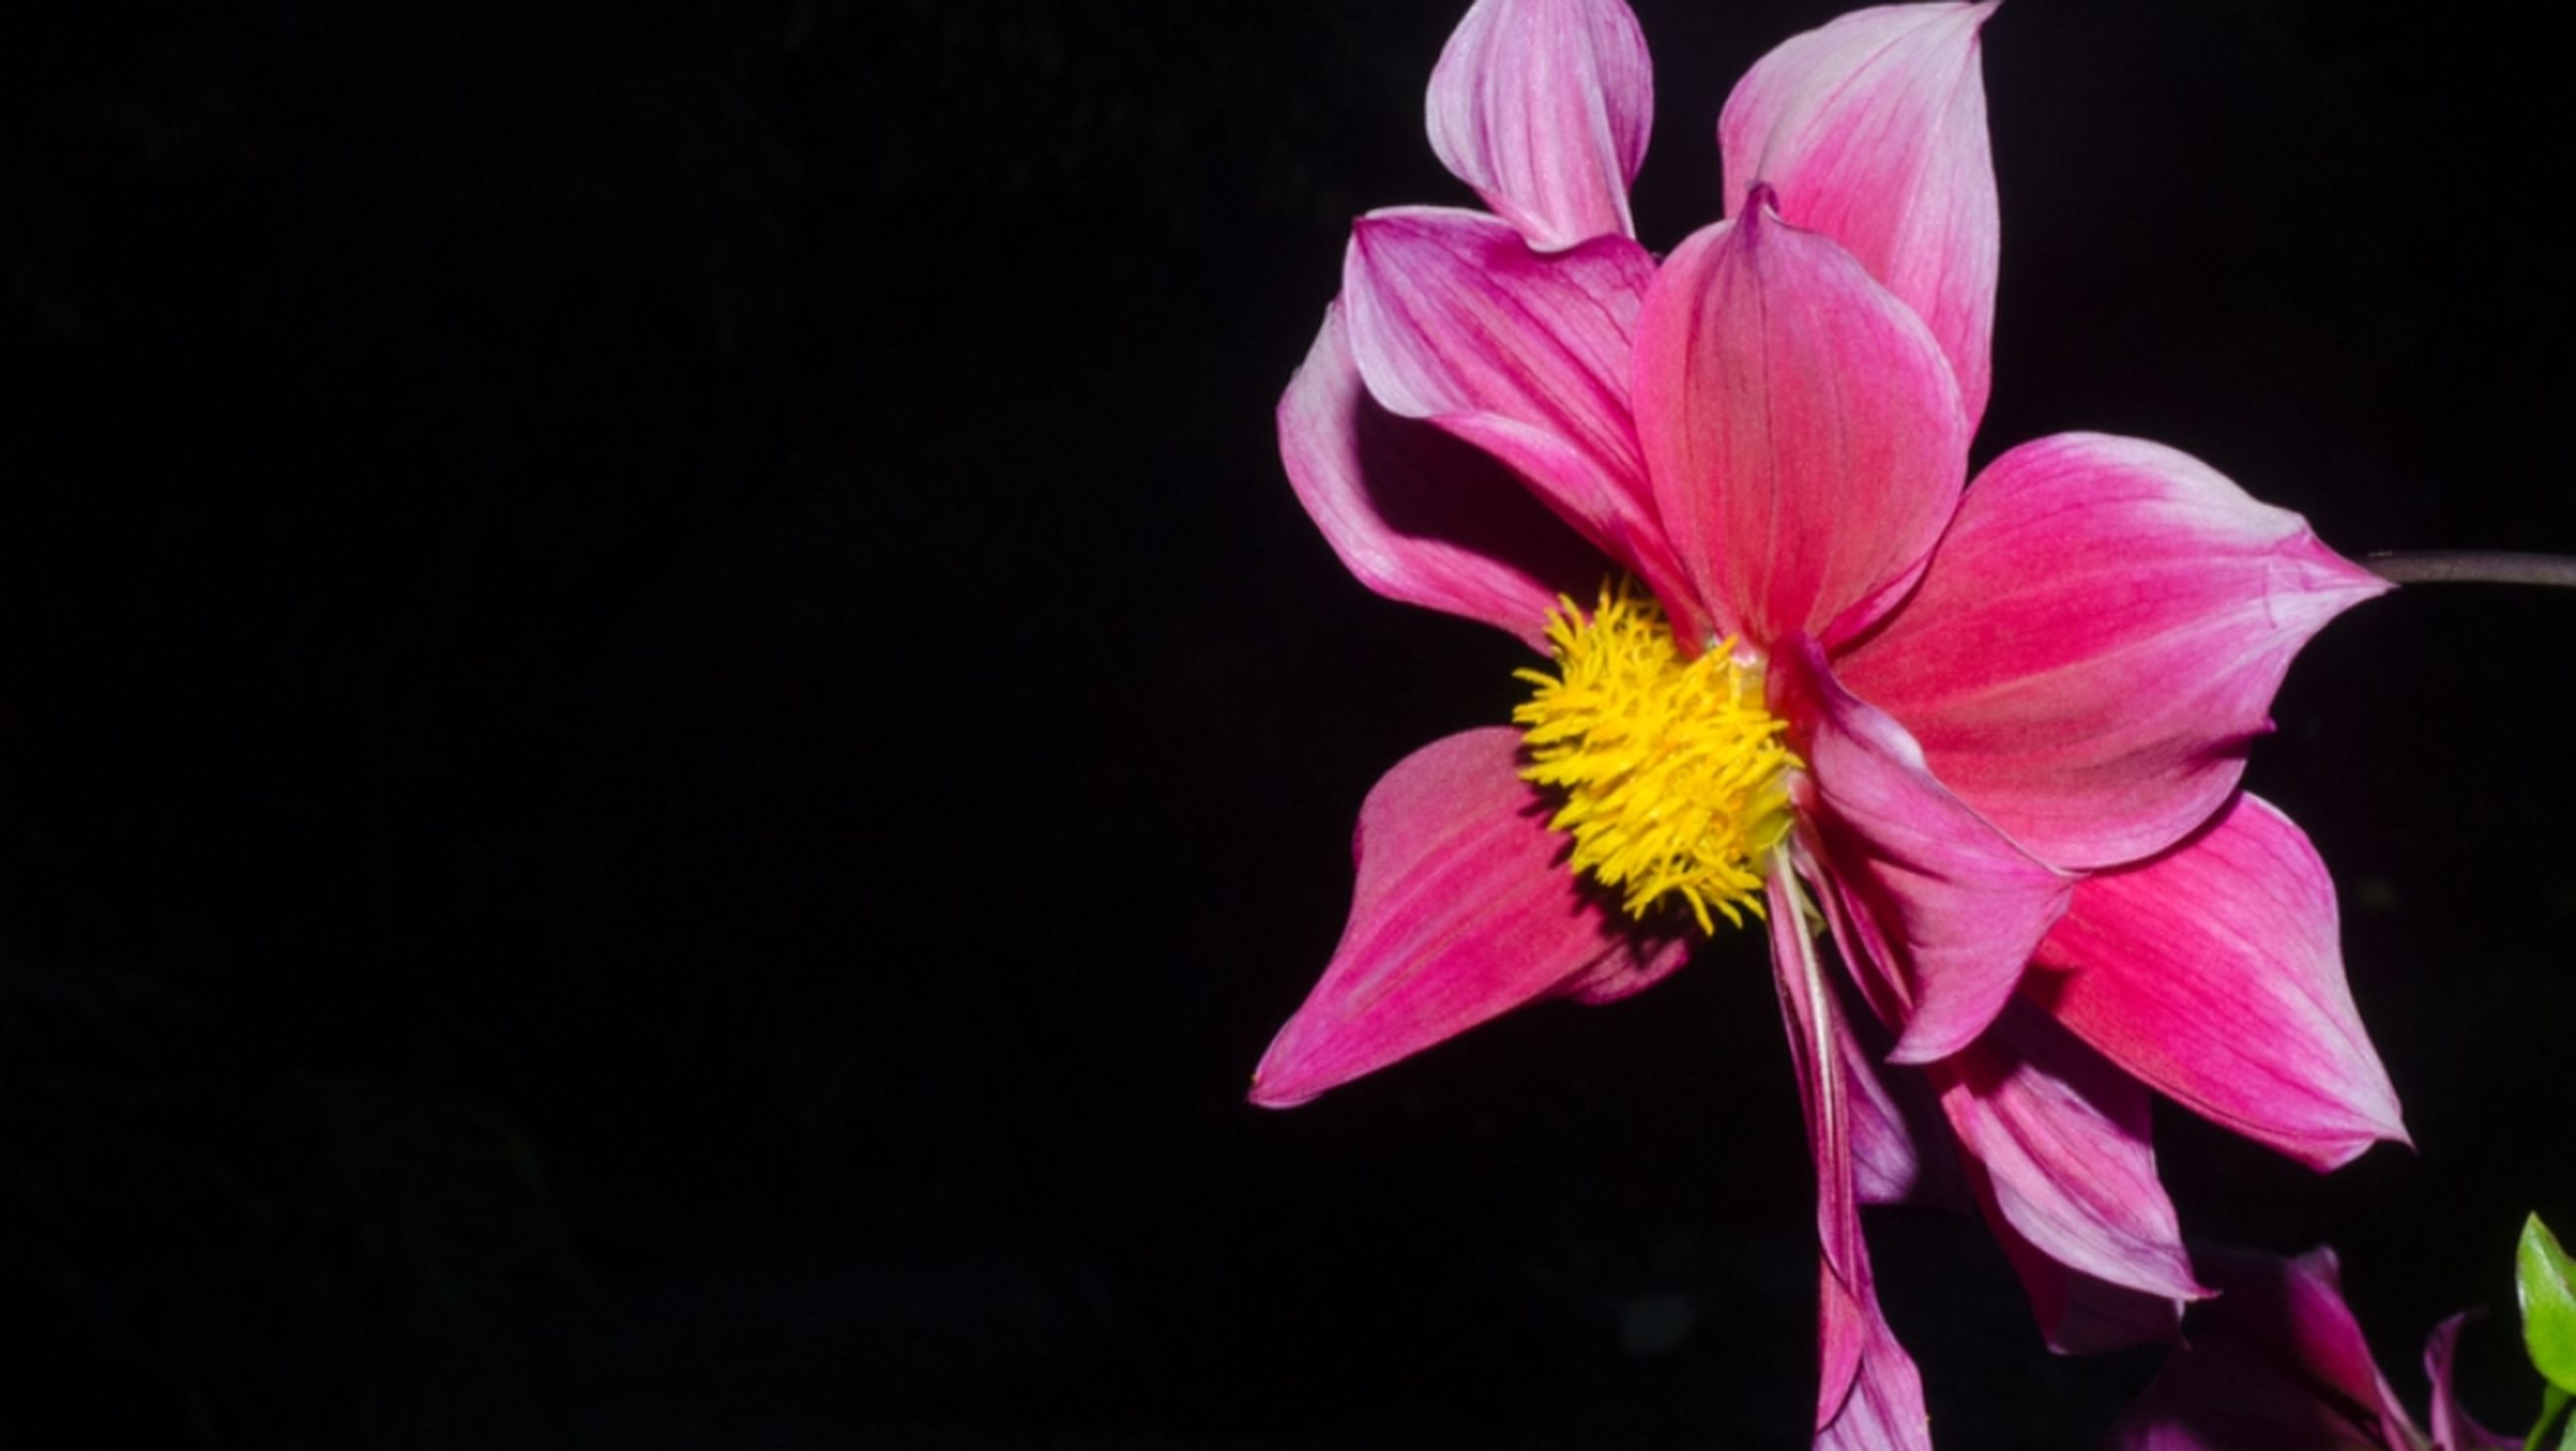 flower, petal, freshness, fragility, flower head, one animal, beauty in nature, animal themes, close-up, nature, studio shot, copy space, insect, pink color, growth, black background, stem, focus on foreground, wildlife, blooming